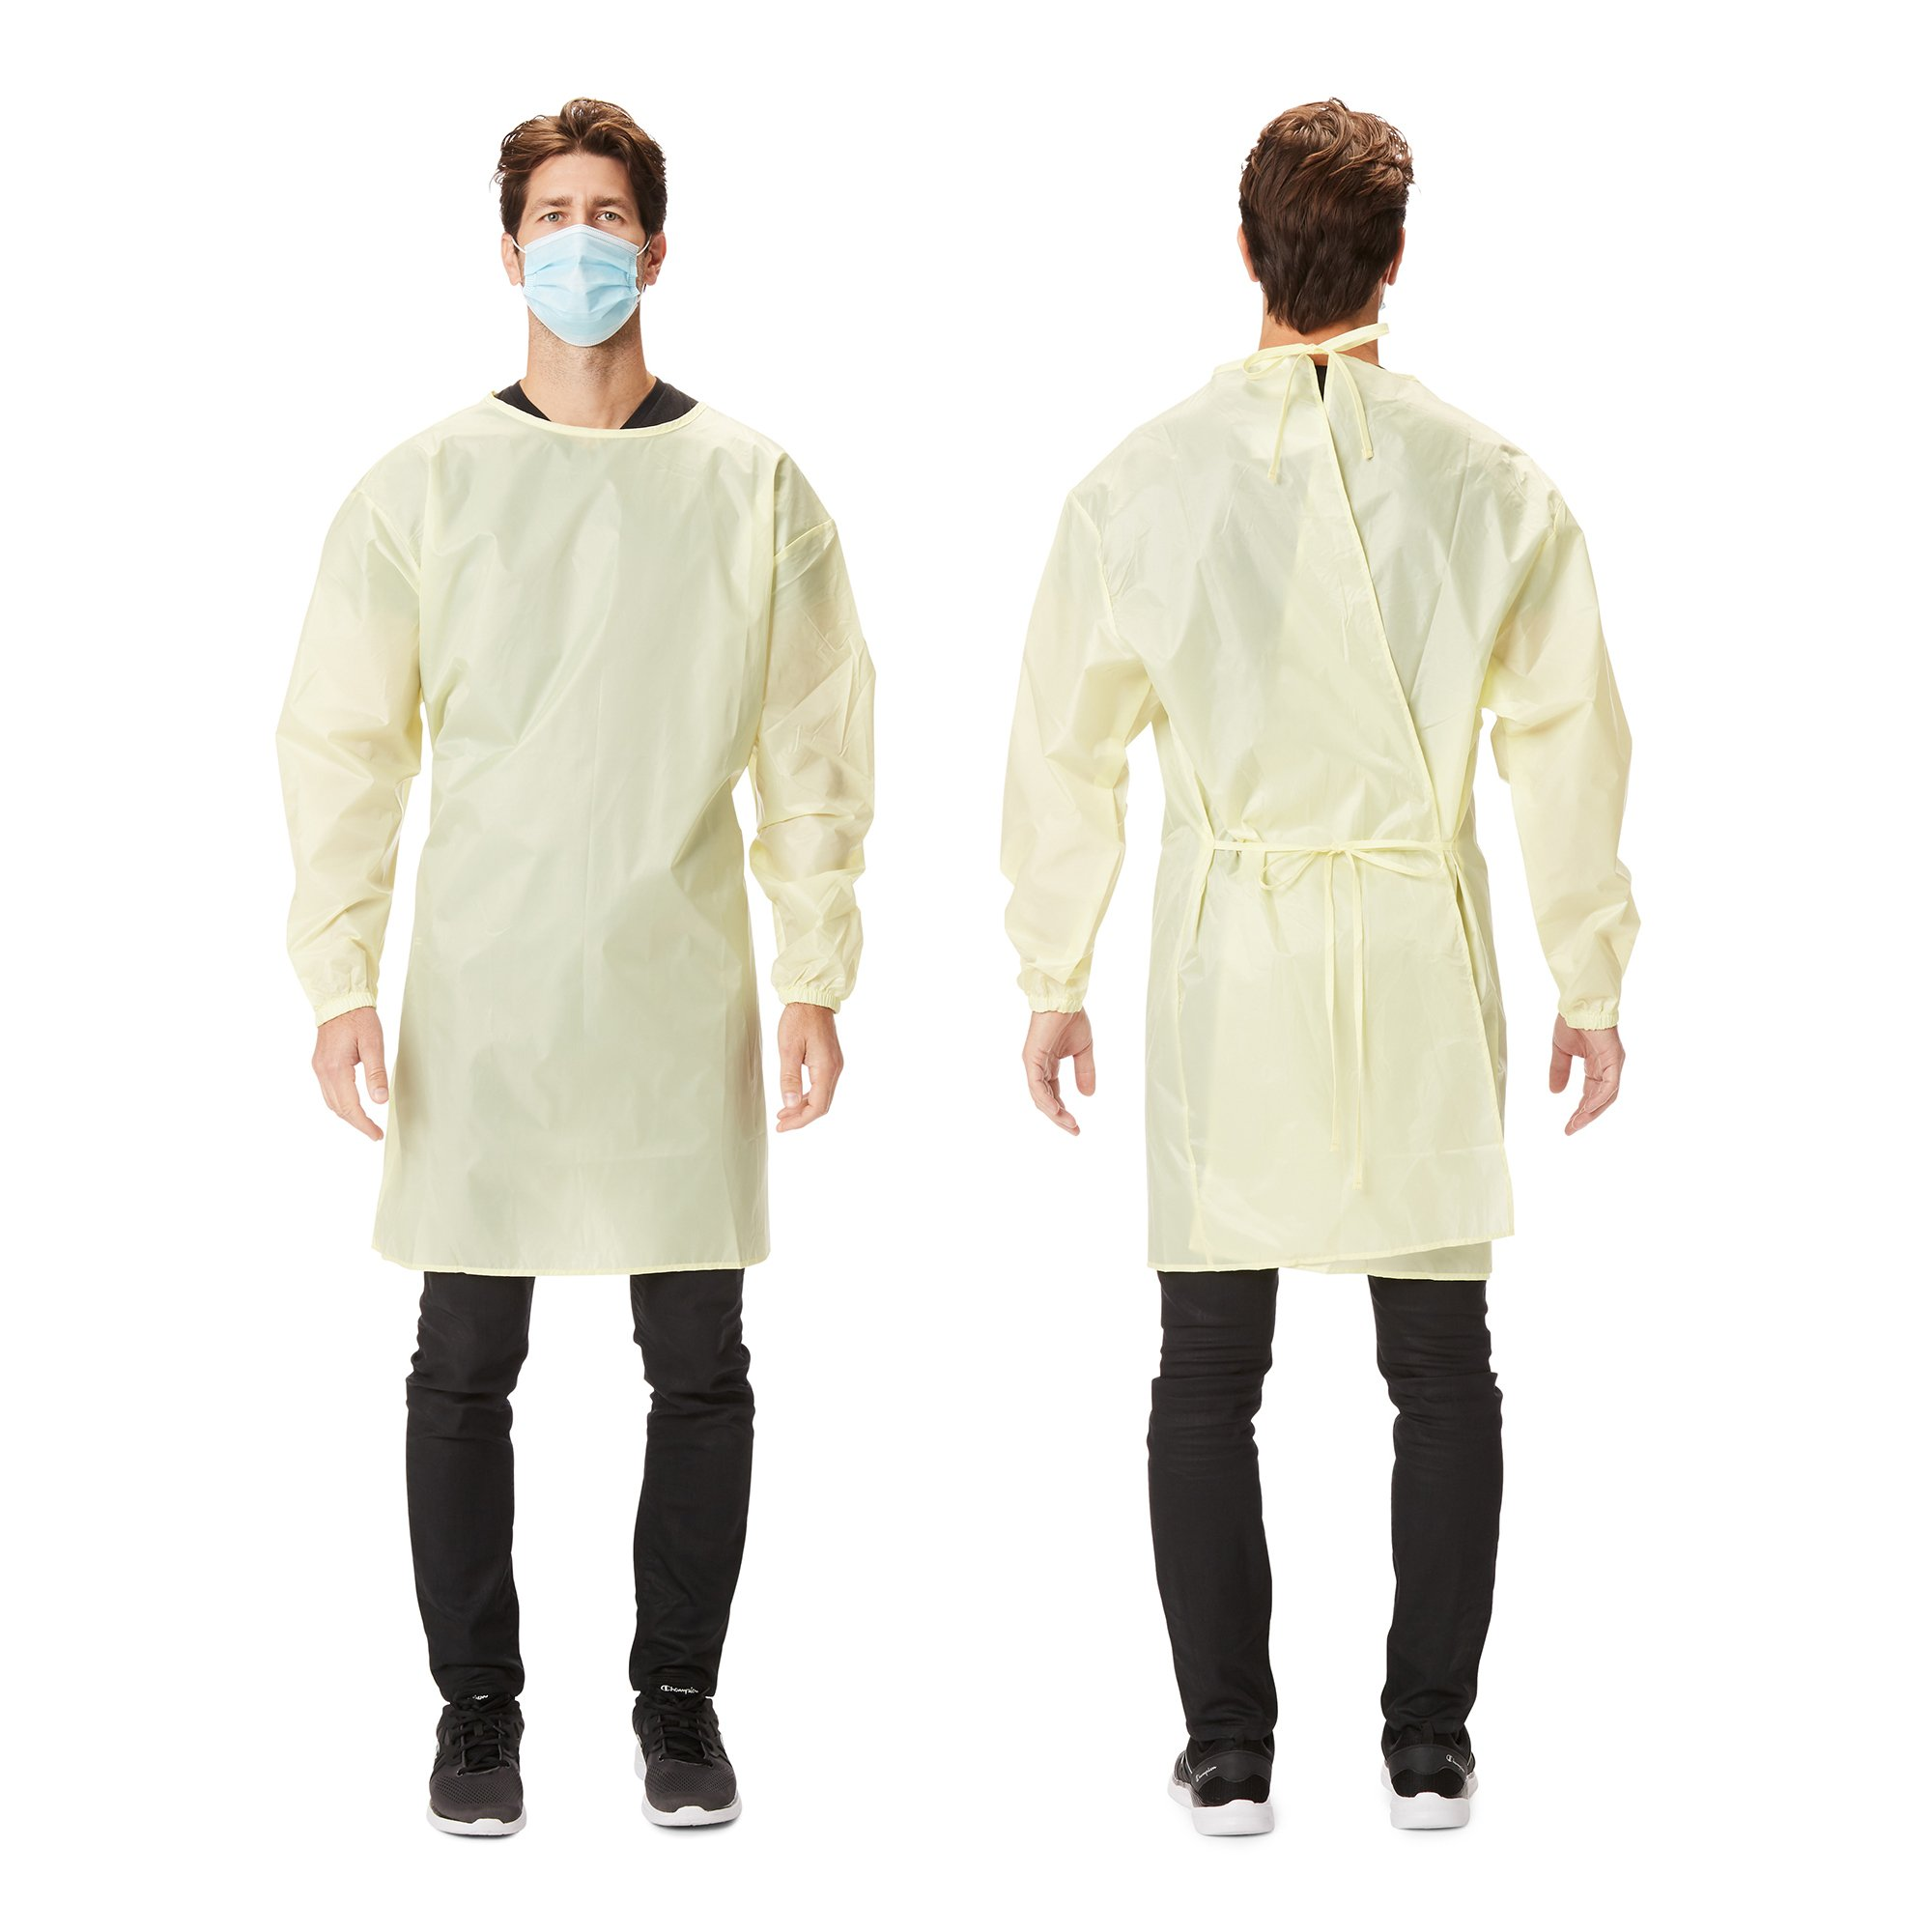 Picture of Protective Procedure Gown Large / X-Large Yellow NonSterile AAMI Level 1 Reusable, 50 per Case